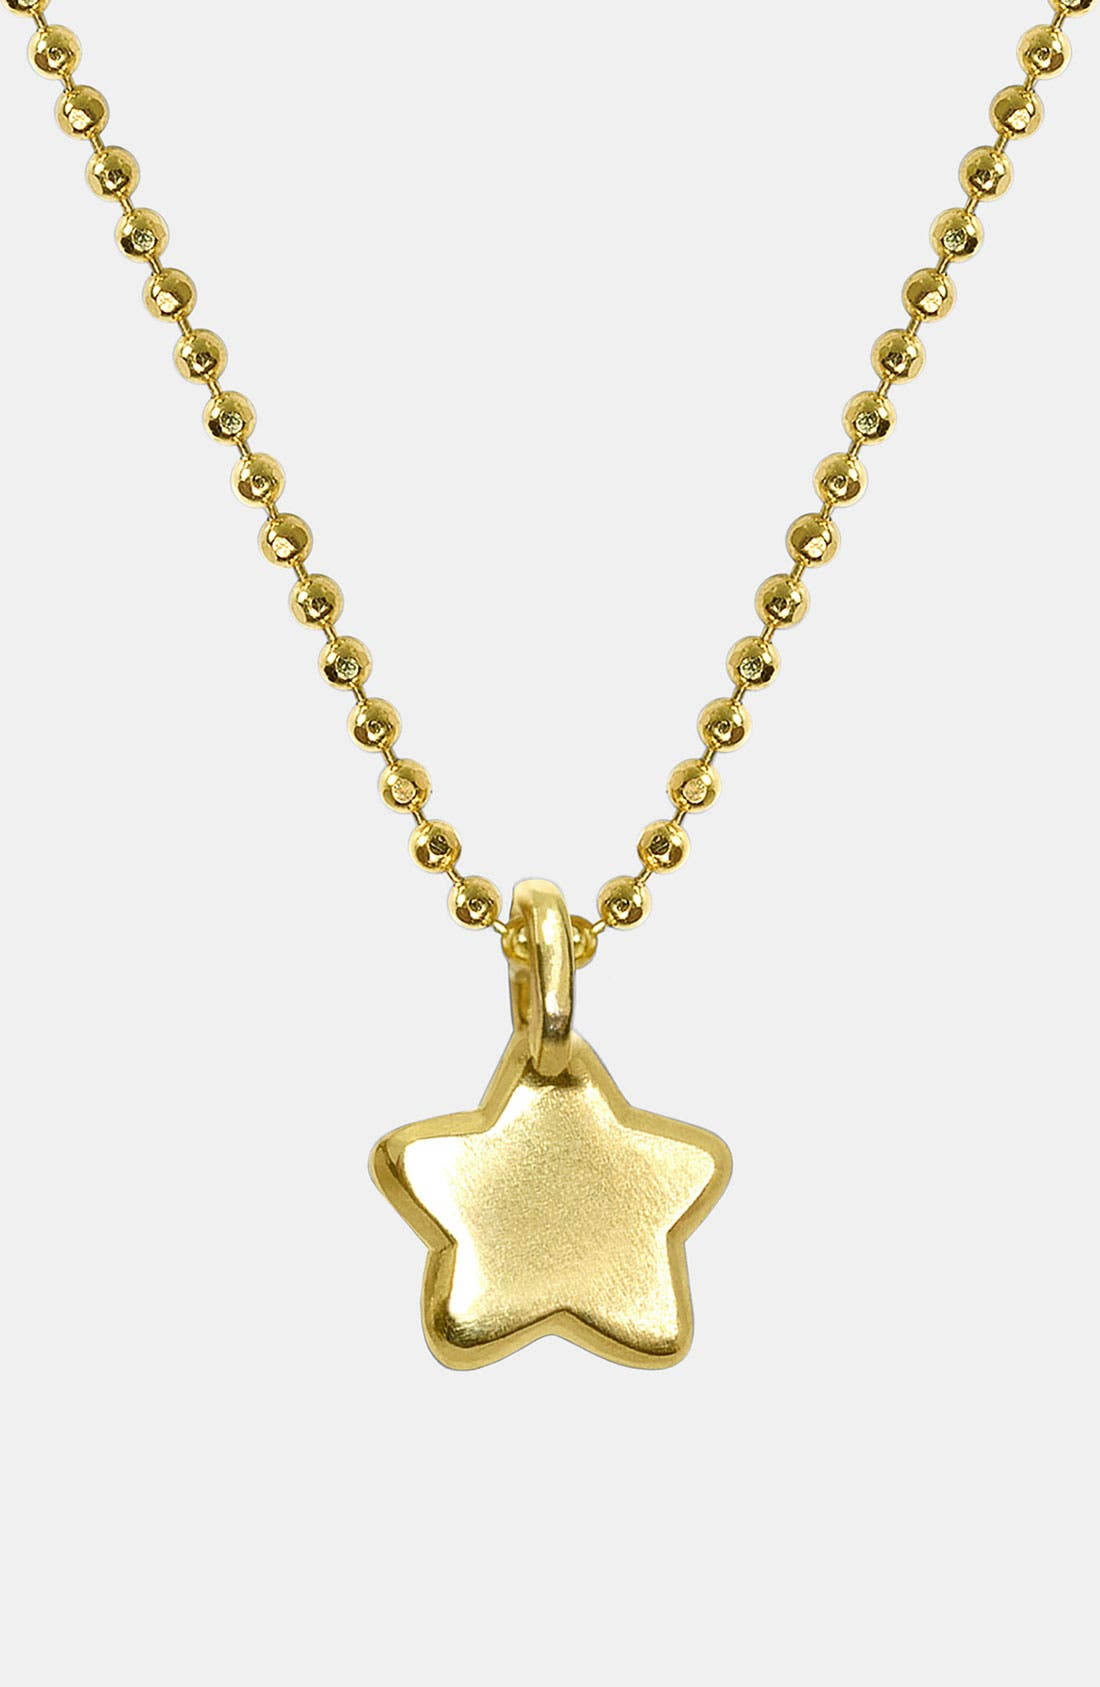 Main Image - Alex Woo 'Mini Star' 14k Gold Pendant Necklace